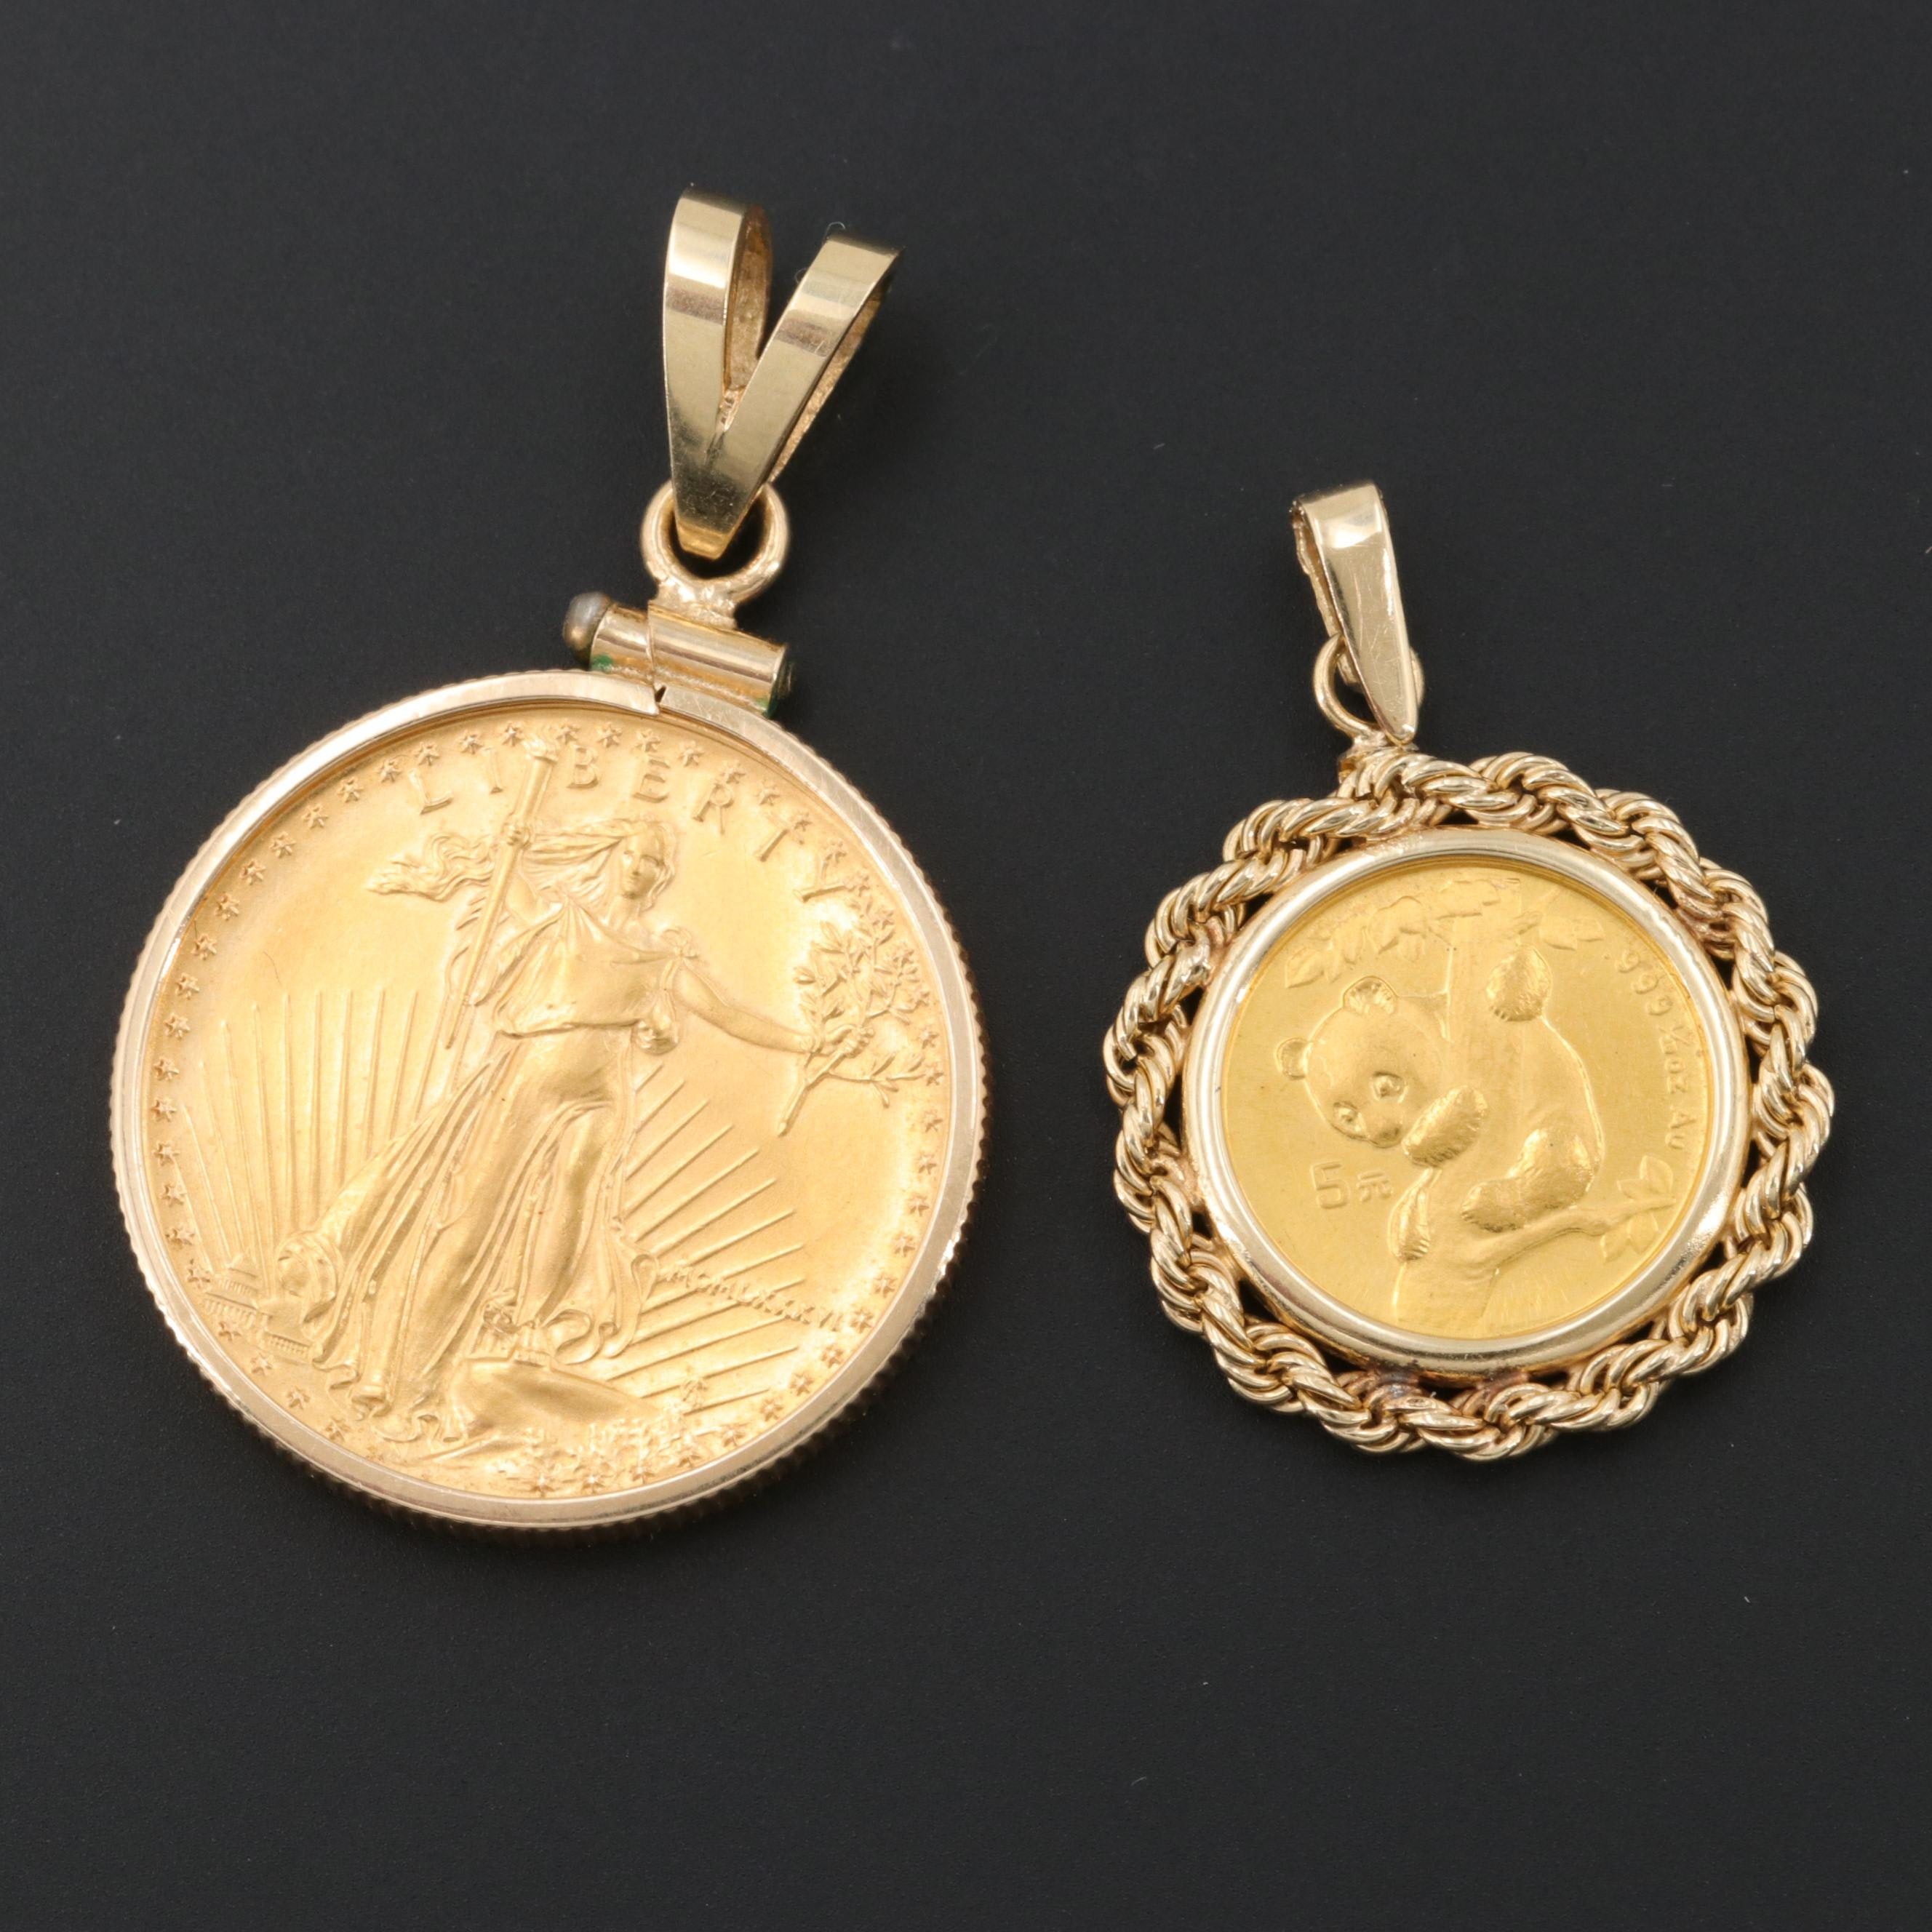 14K Pendants with 1986 $10 Gold Eagle and 1996 5-Yuan Chinese Gold Panda Coin